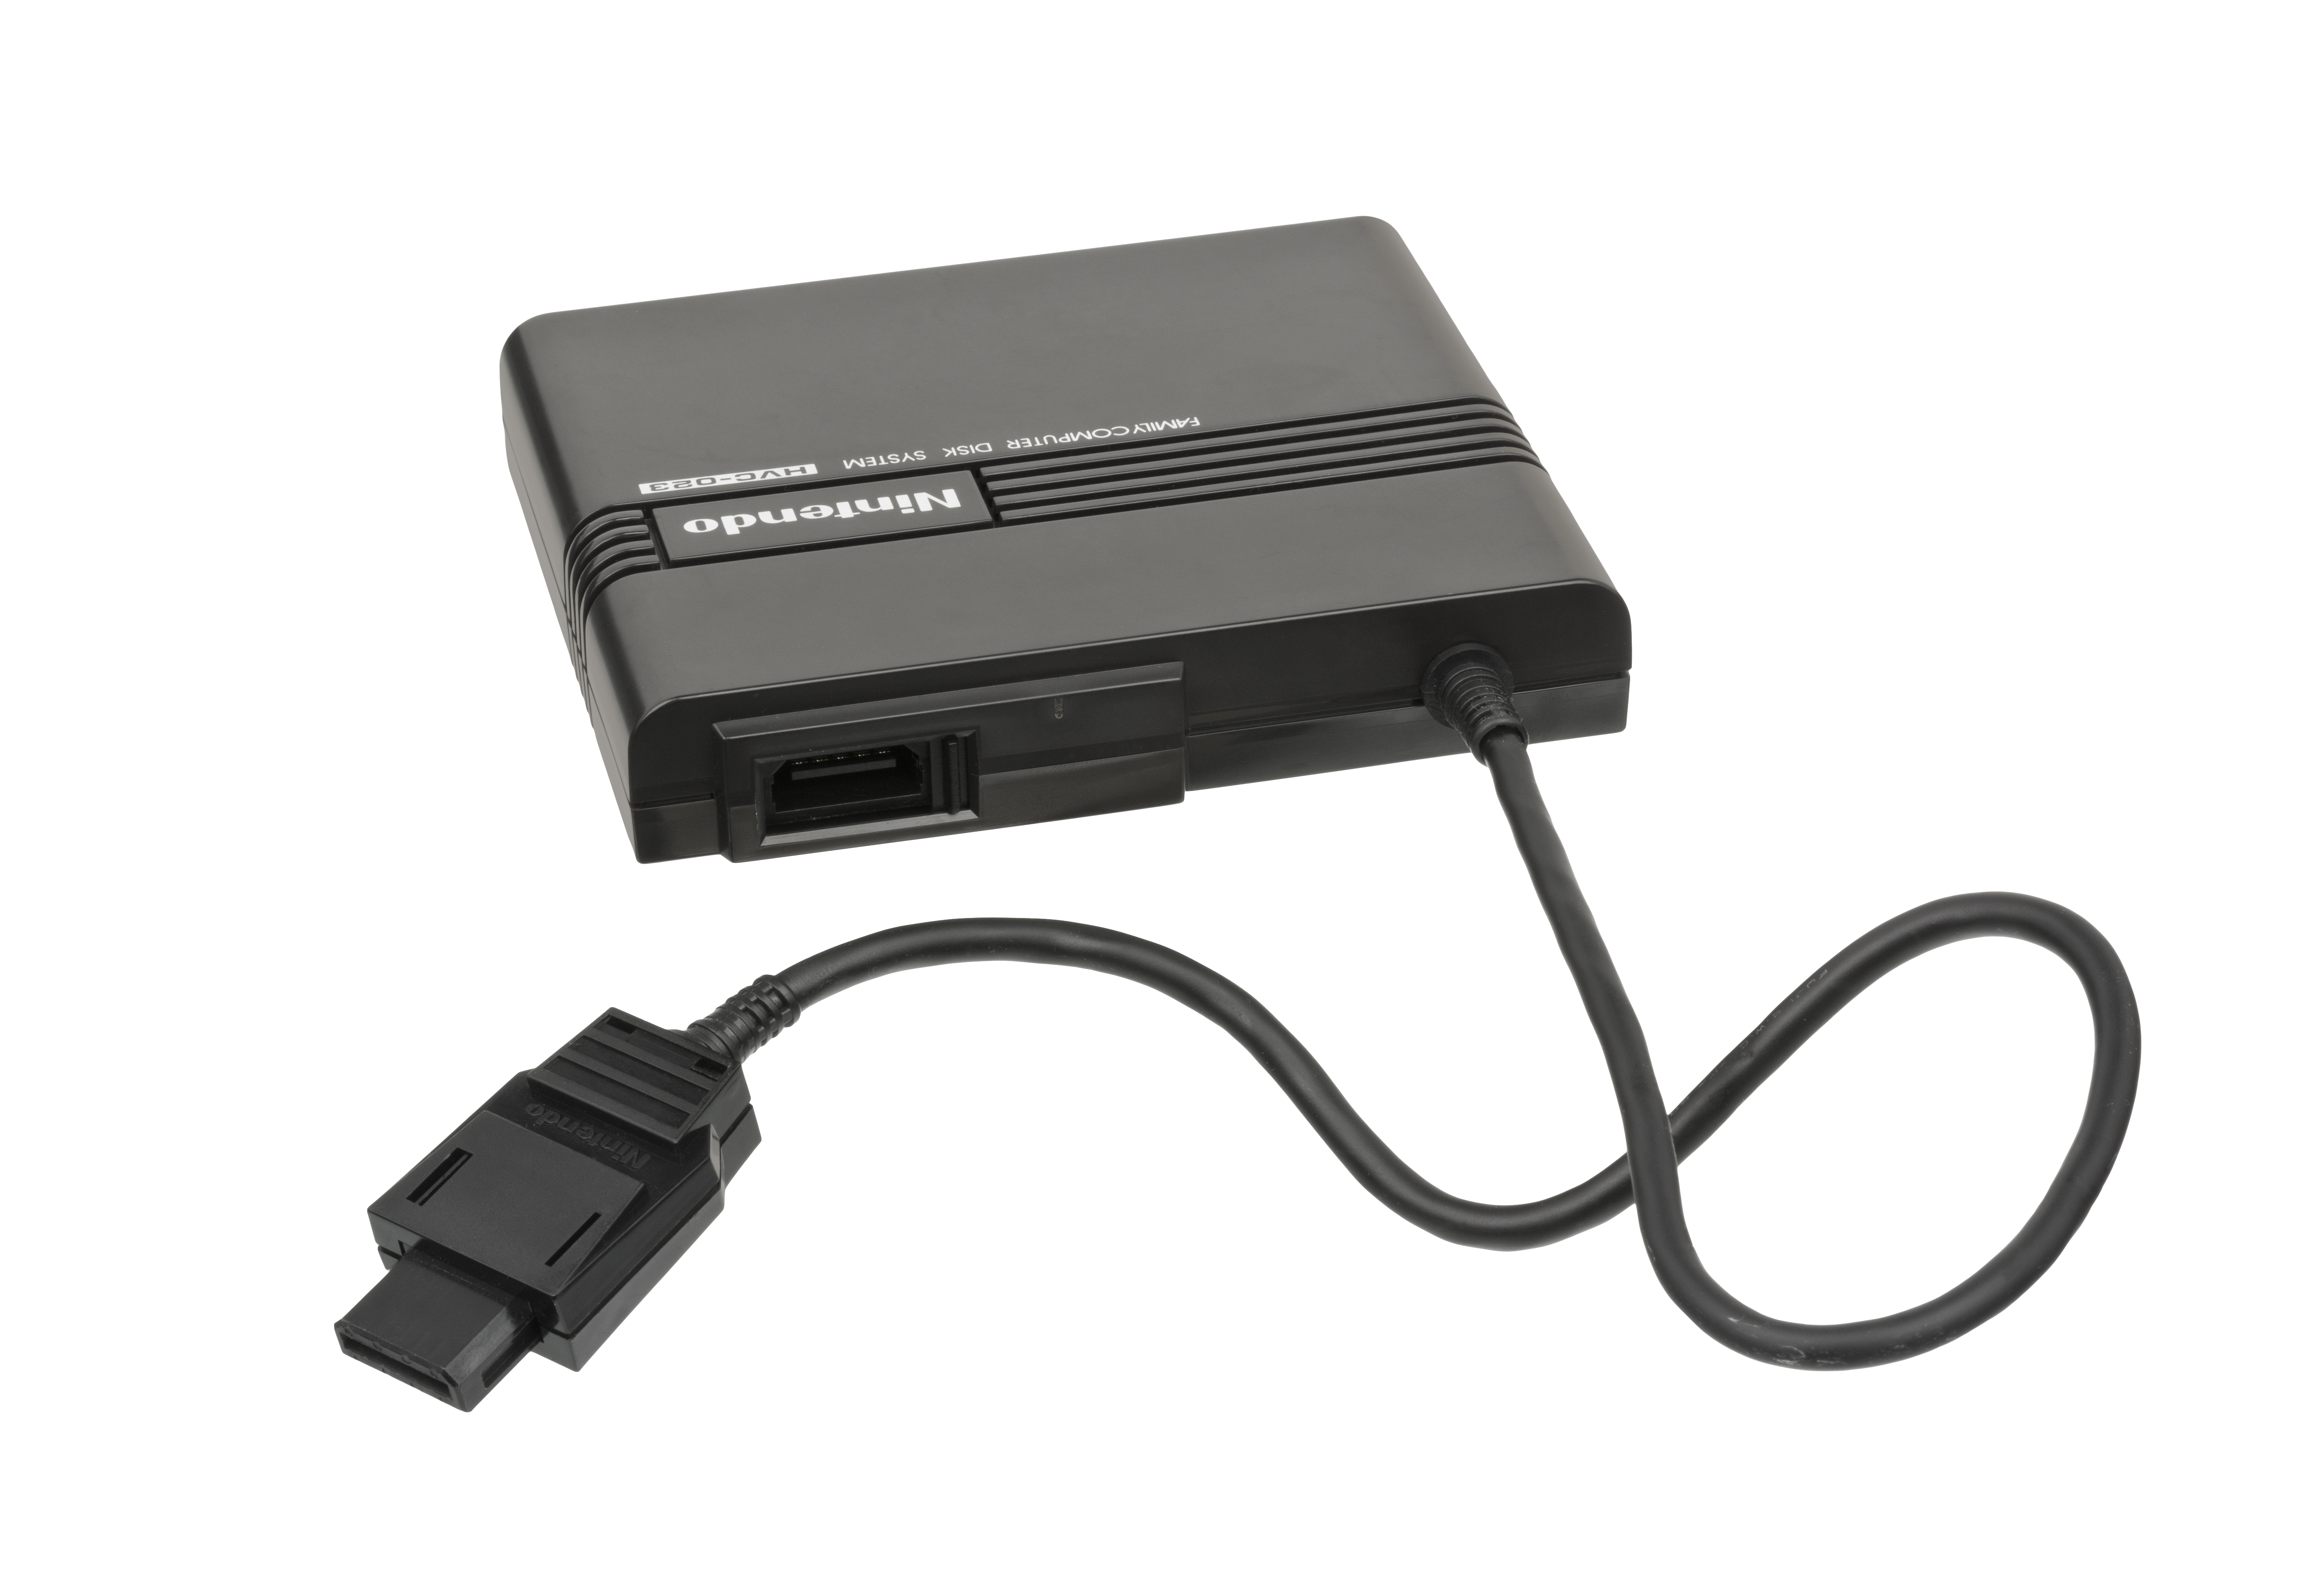 add-on for the Japanese Nintendo Famicom video game console. This was inserted into the cartridge slot of the Famicom and plugged into the disk drive